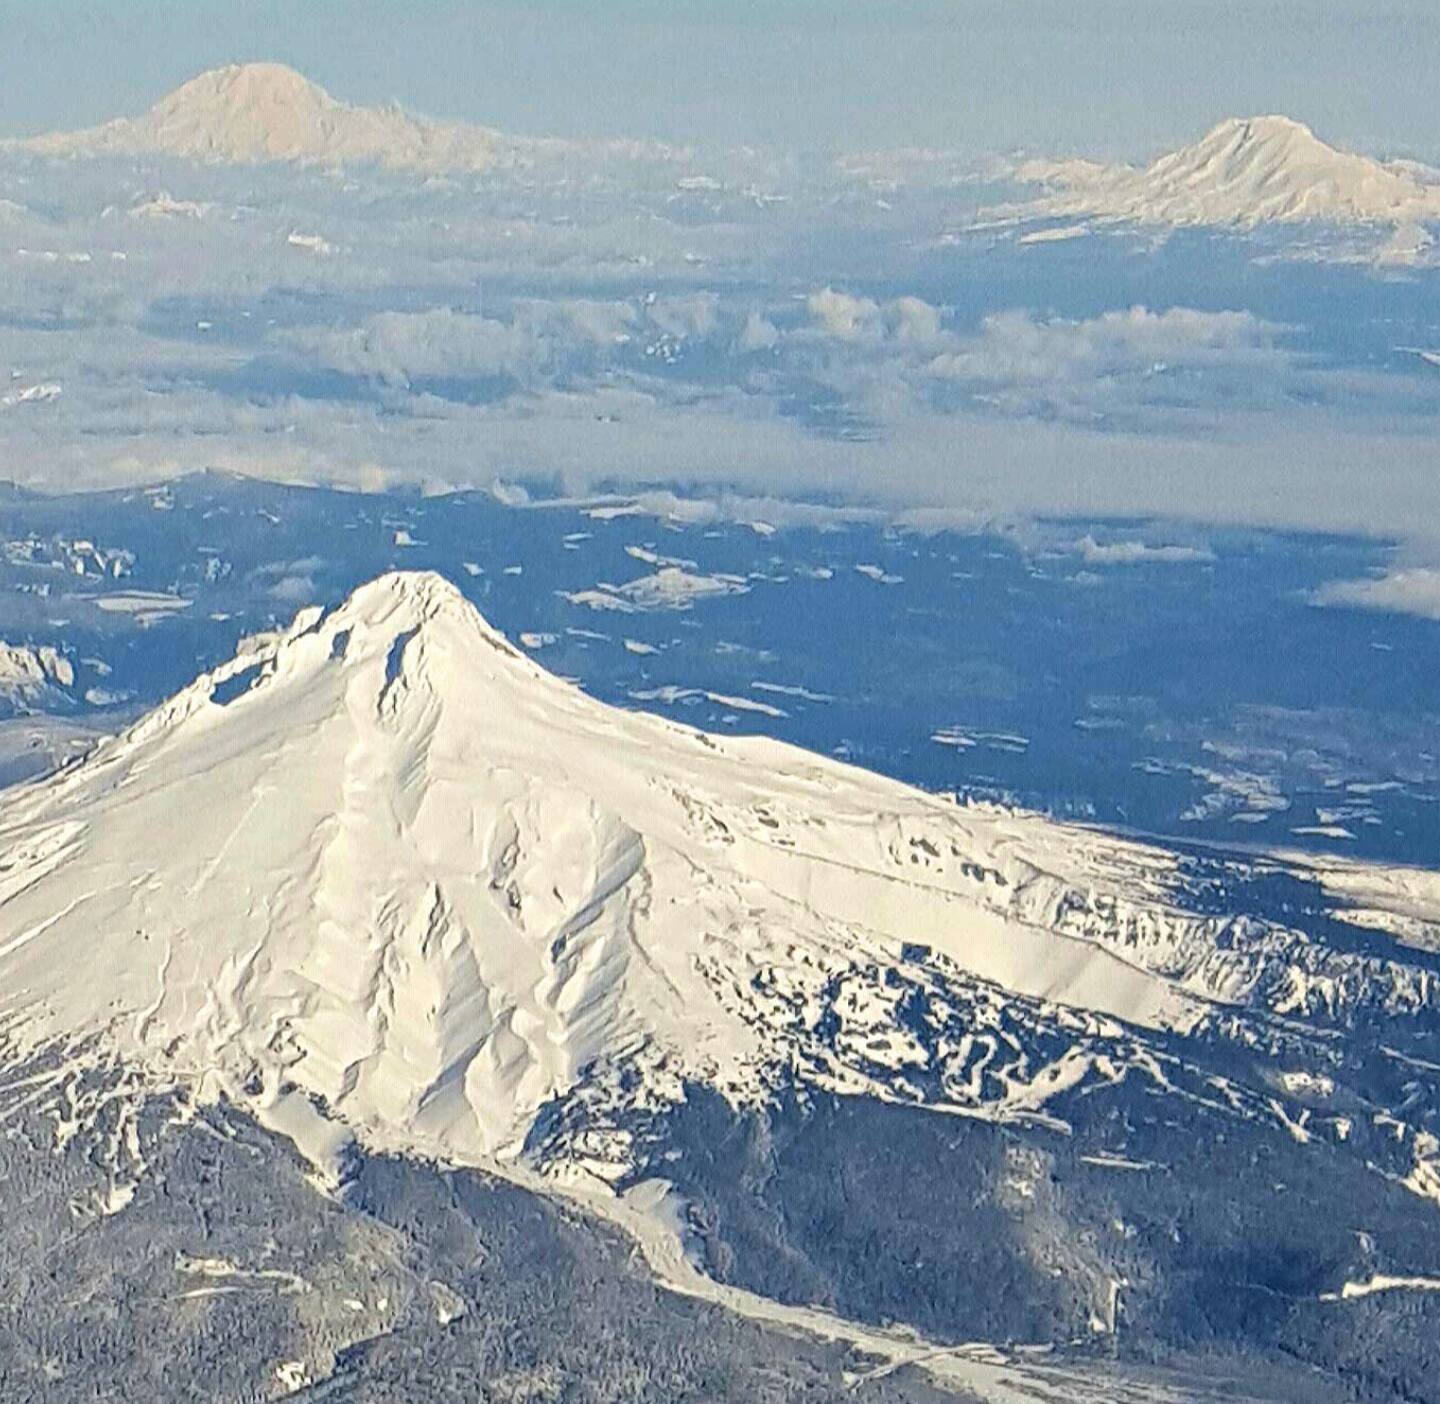 Places To Visit In Montana Usa: Mt. Hood, Mt. Adams, Mt Rainier By Trish Greer Martin